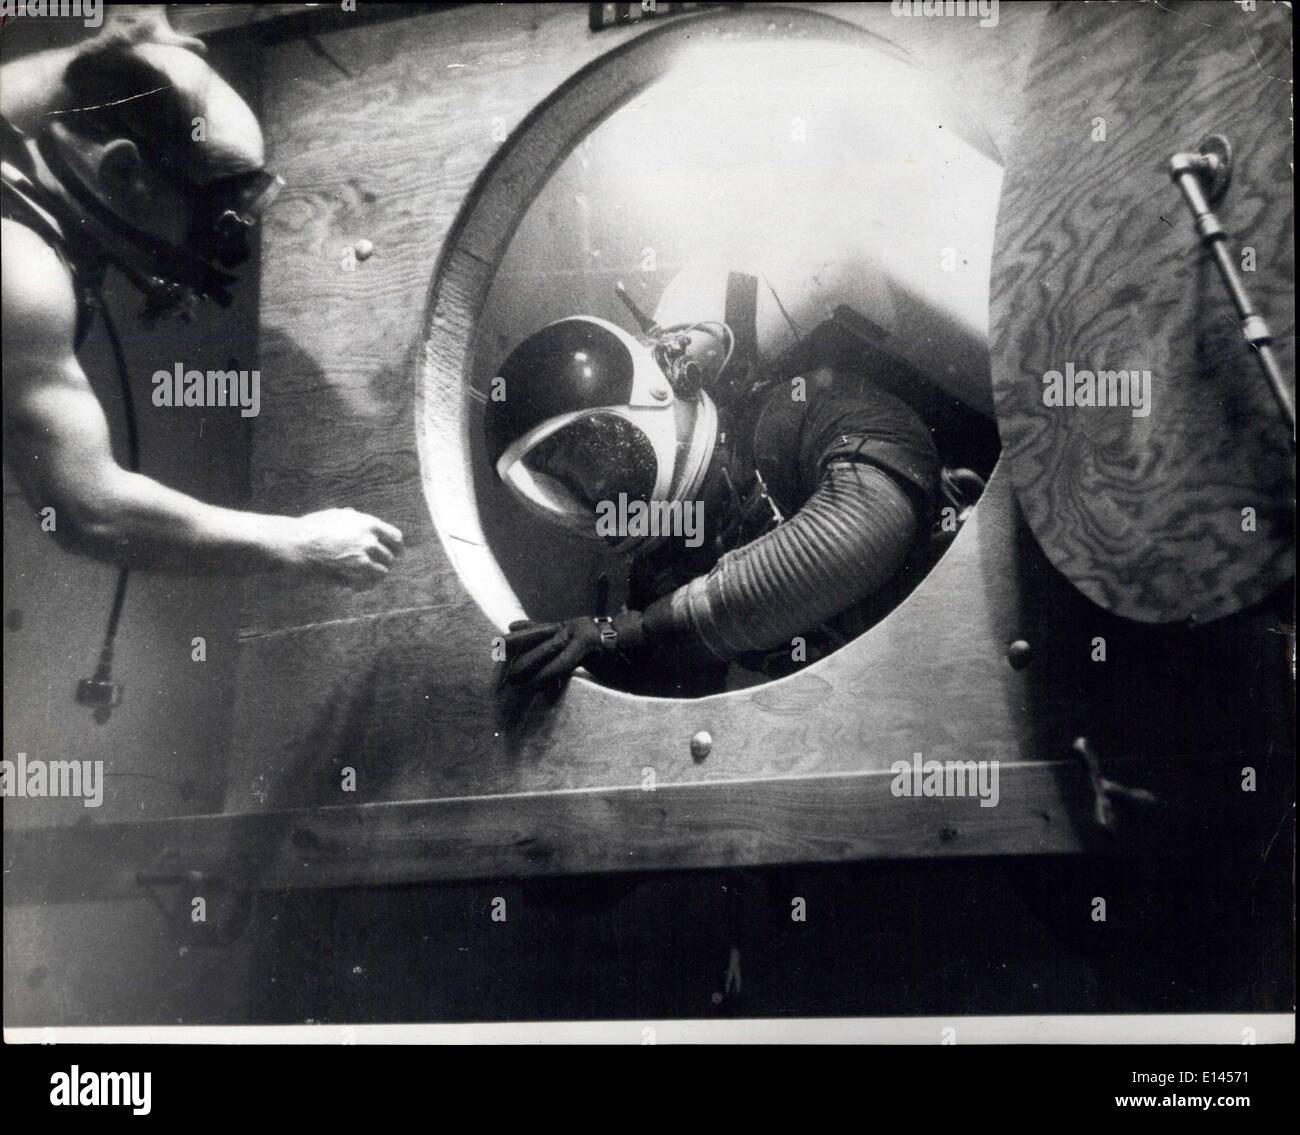 Apr. 04, 2012 - Outer Space Training - Underwater: To get the effects of Weightlessness in outer space, astronauts may now e trained - underwater. By Operating in conditions of natural buoyancy, they learn to control and adapt their bodily movements in Unearthly;y gravitational environments. At Boeing Astronautical center in the U.S., reactions are carefully being compiled and analyzed.Exercises are performed in strict accordance in Strict with bodily movements required of spaceman in distant space voyage - Stock Image